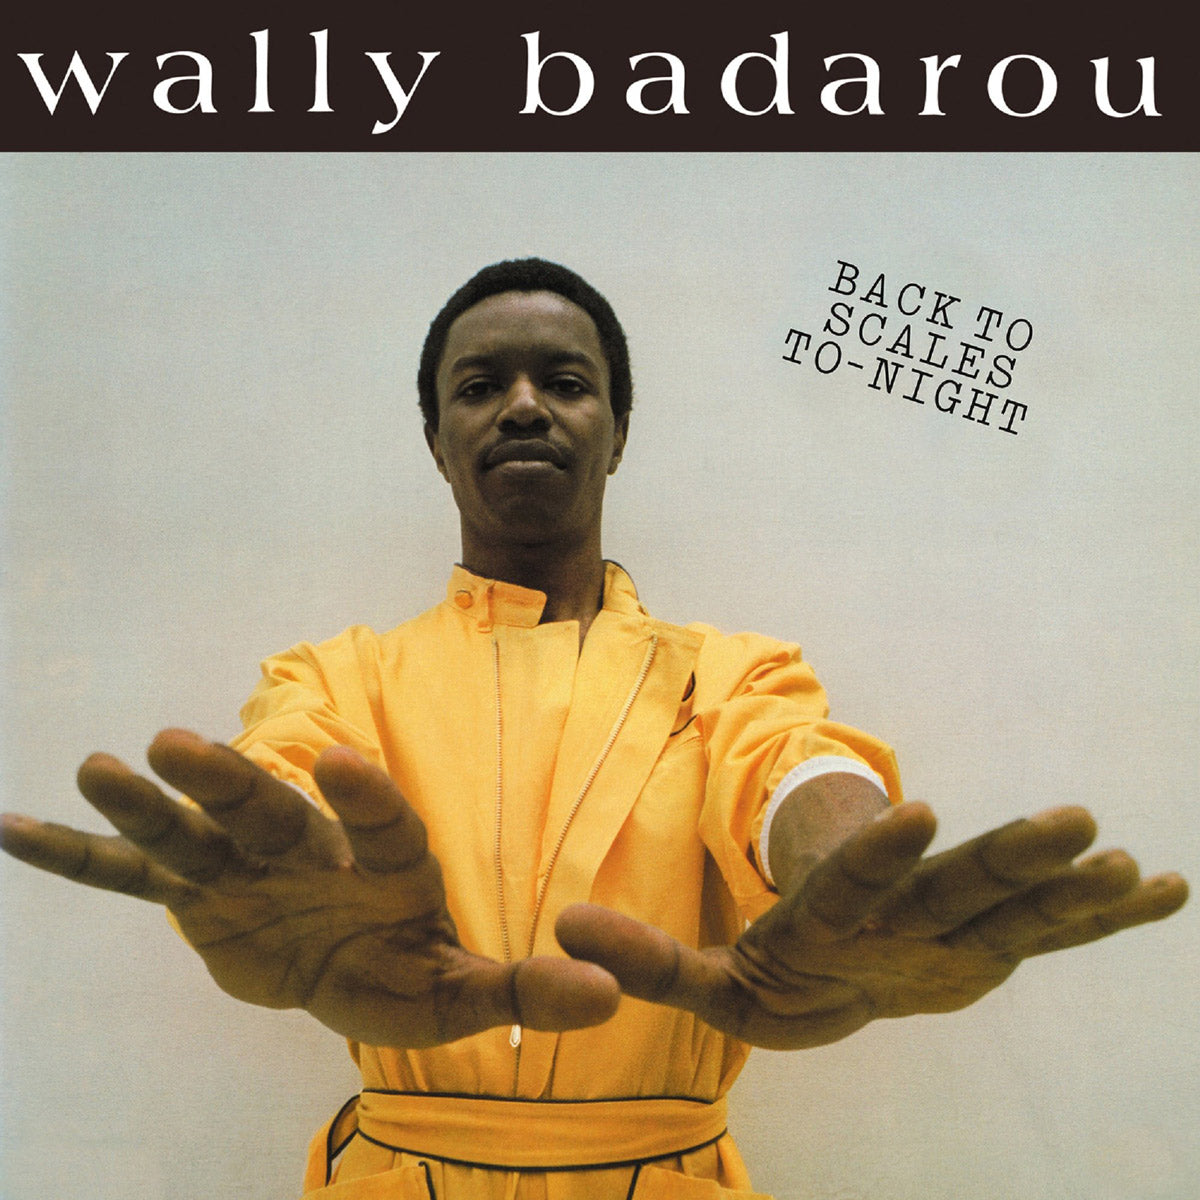 Wally Badarou Back to Scales To-Night Album Cover - Adsum